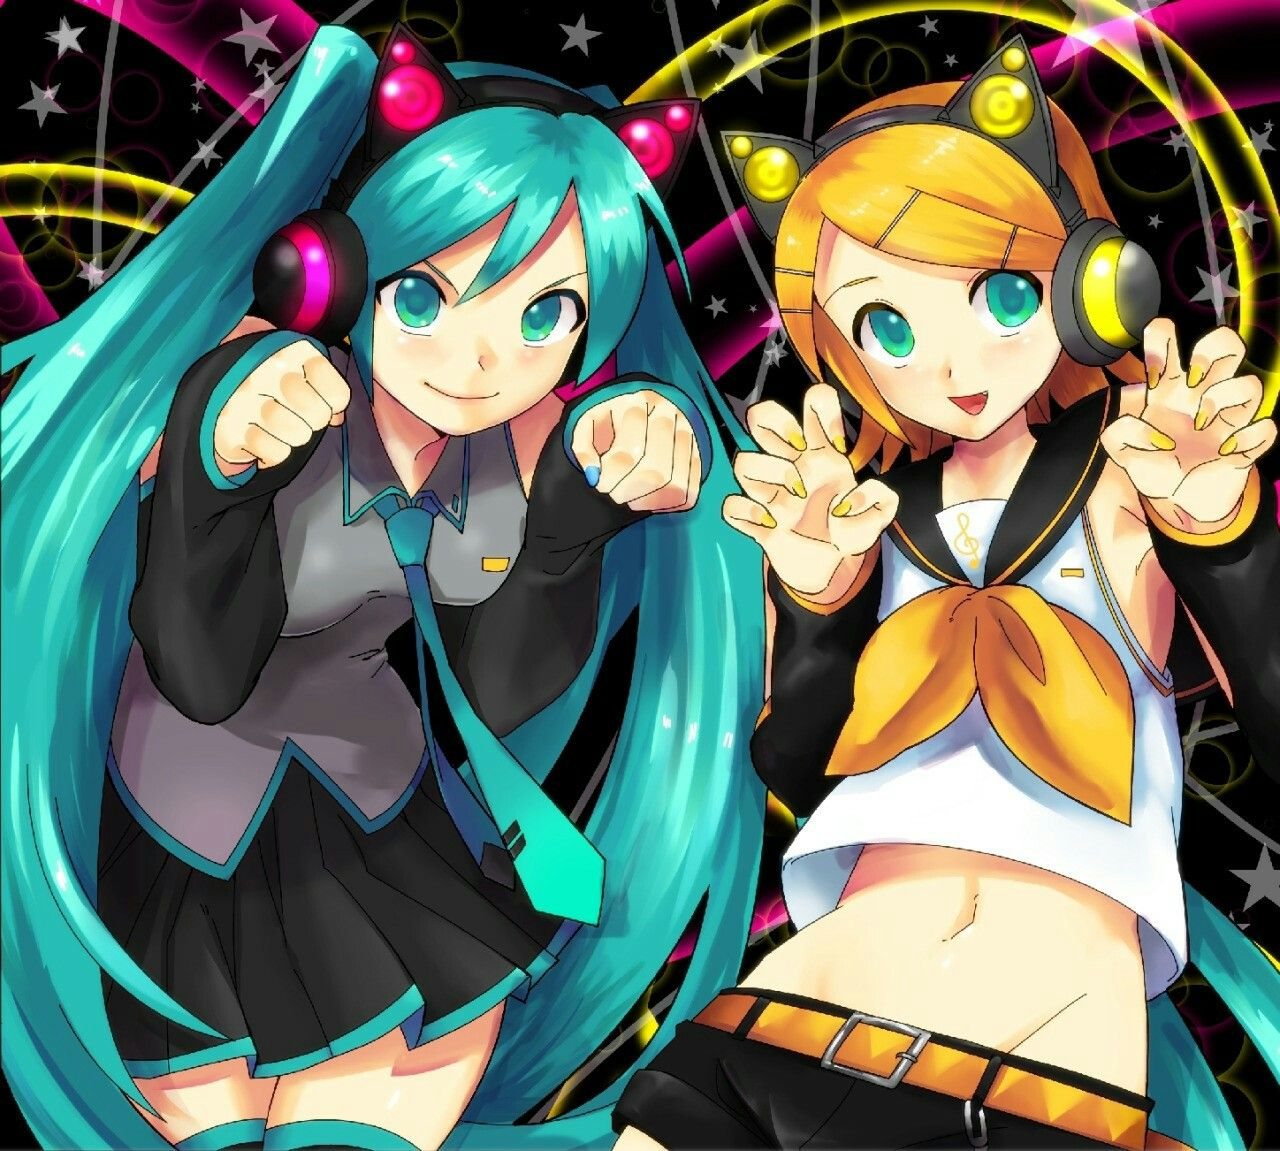 Hatsune Miku and Kagamine Rin with Axent wear cat ear